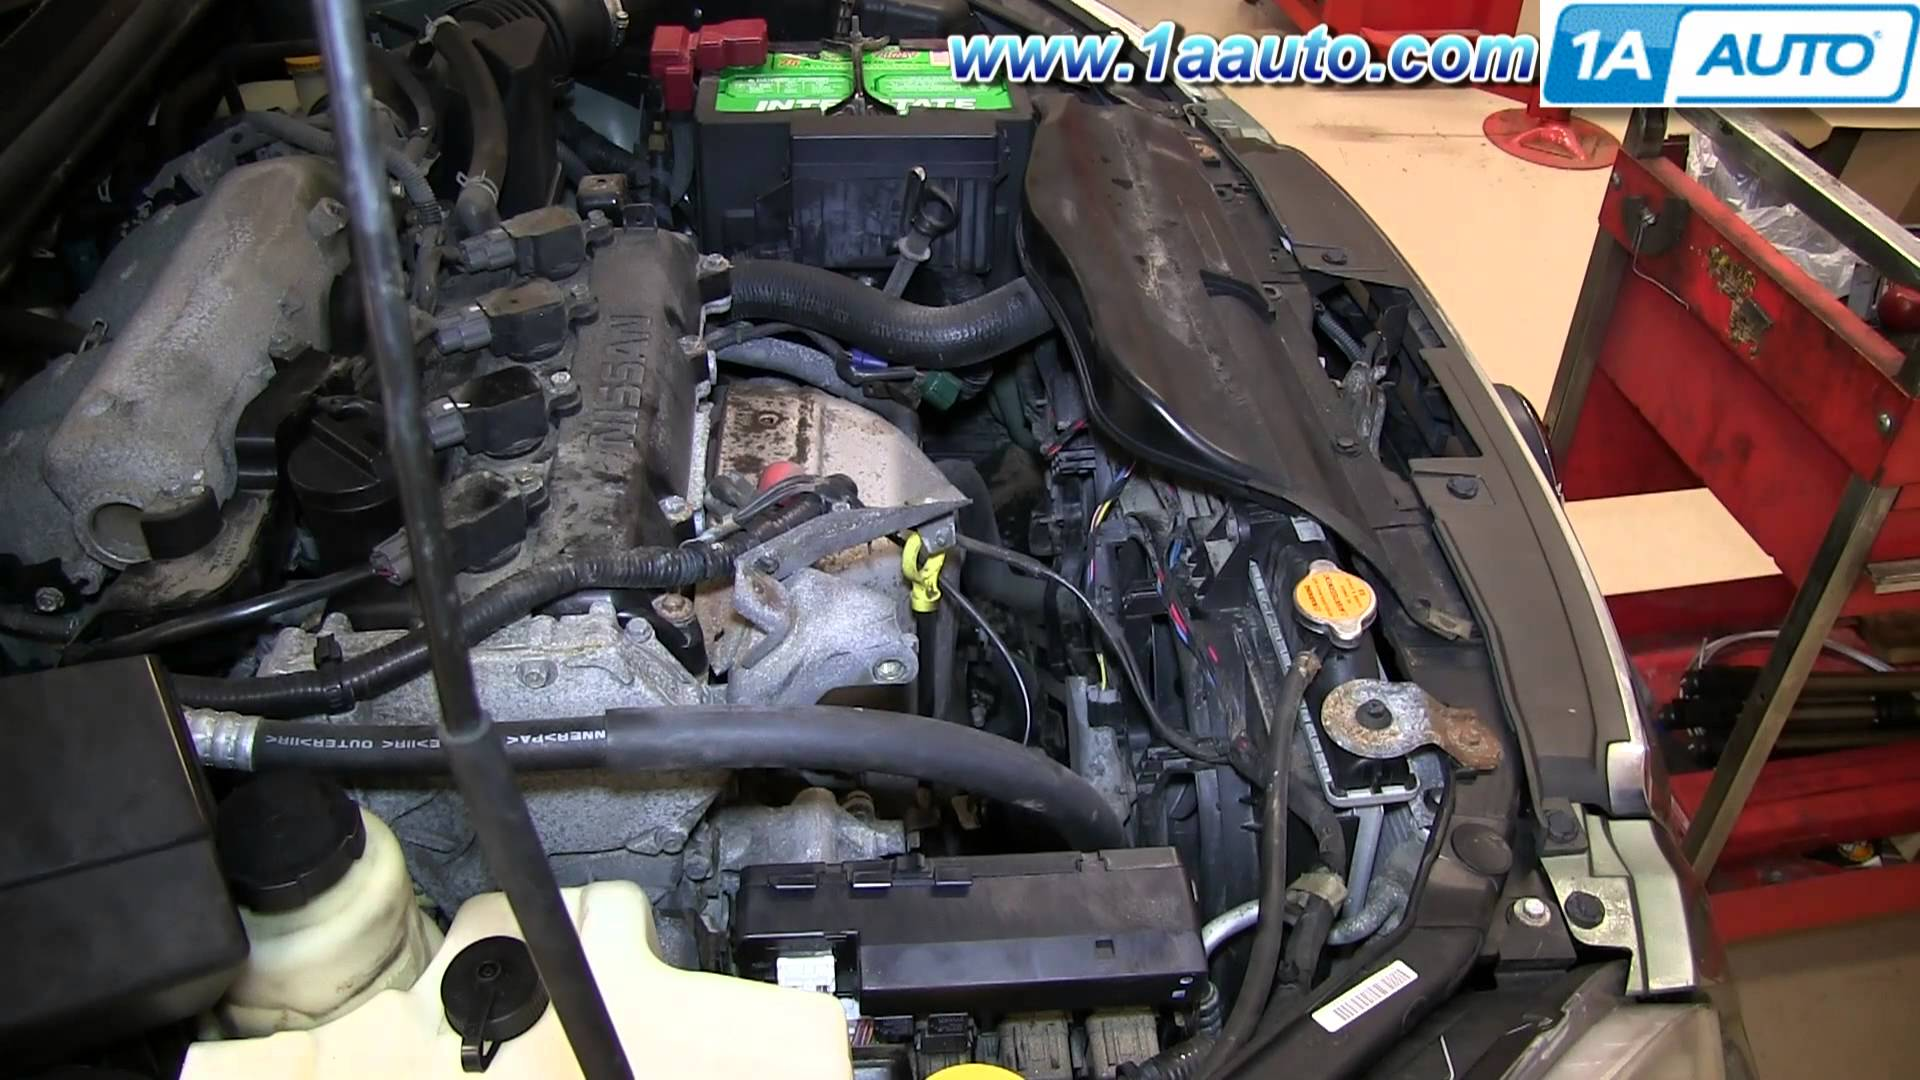 2014 Nissan Pathfinder Wiring Diagram Nissan Altima Battery And Emergency Brake Light On